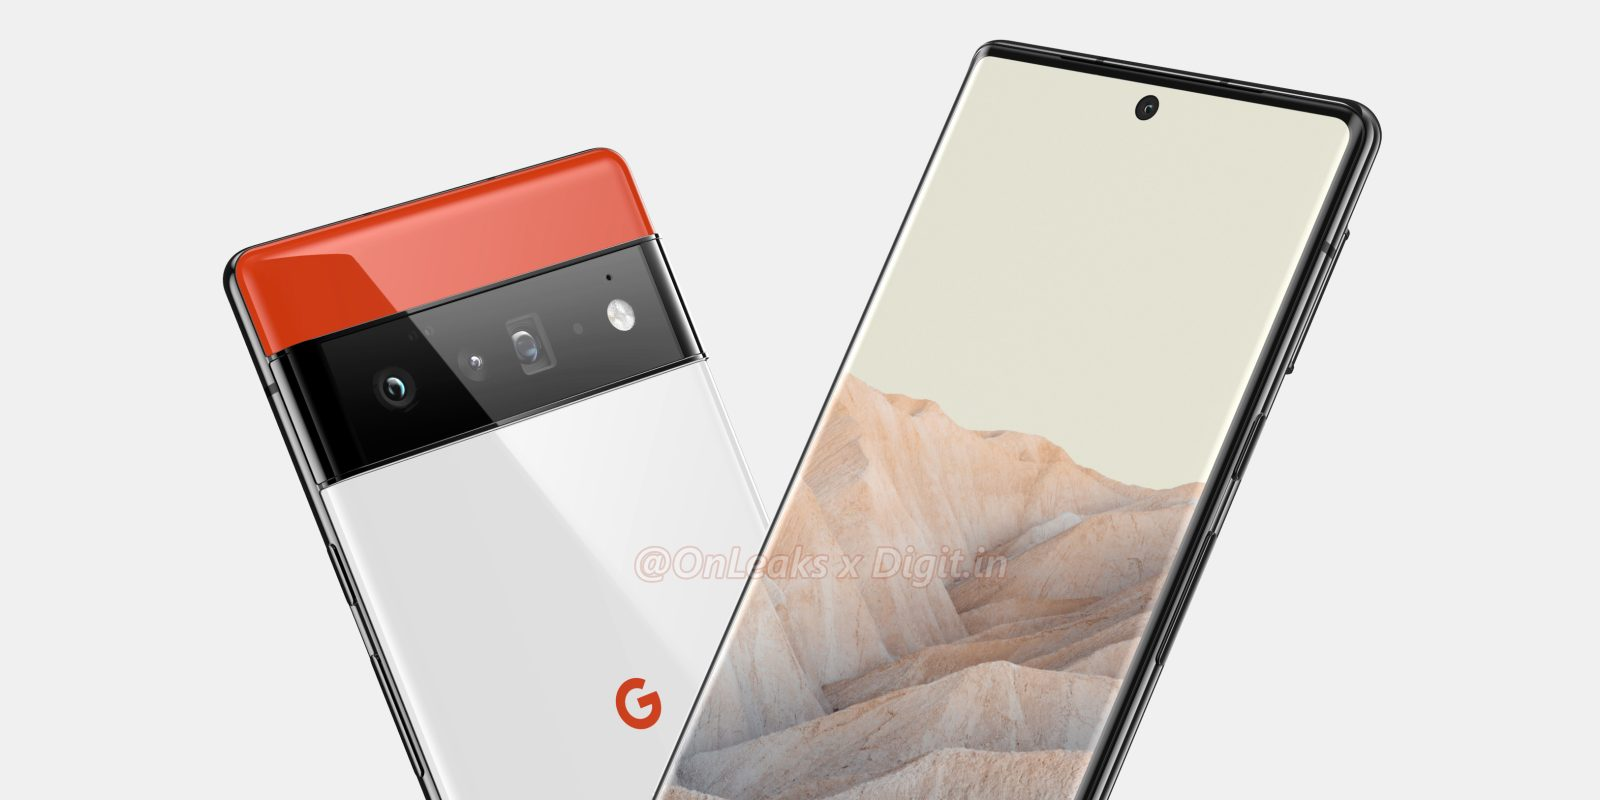 What To Expect From Google Pixel 6 Cameras